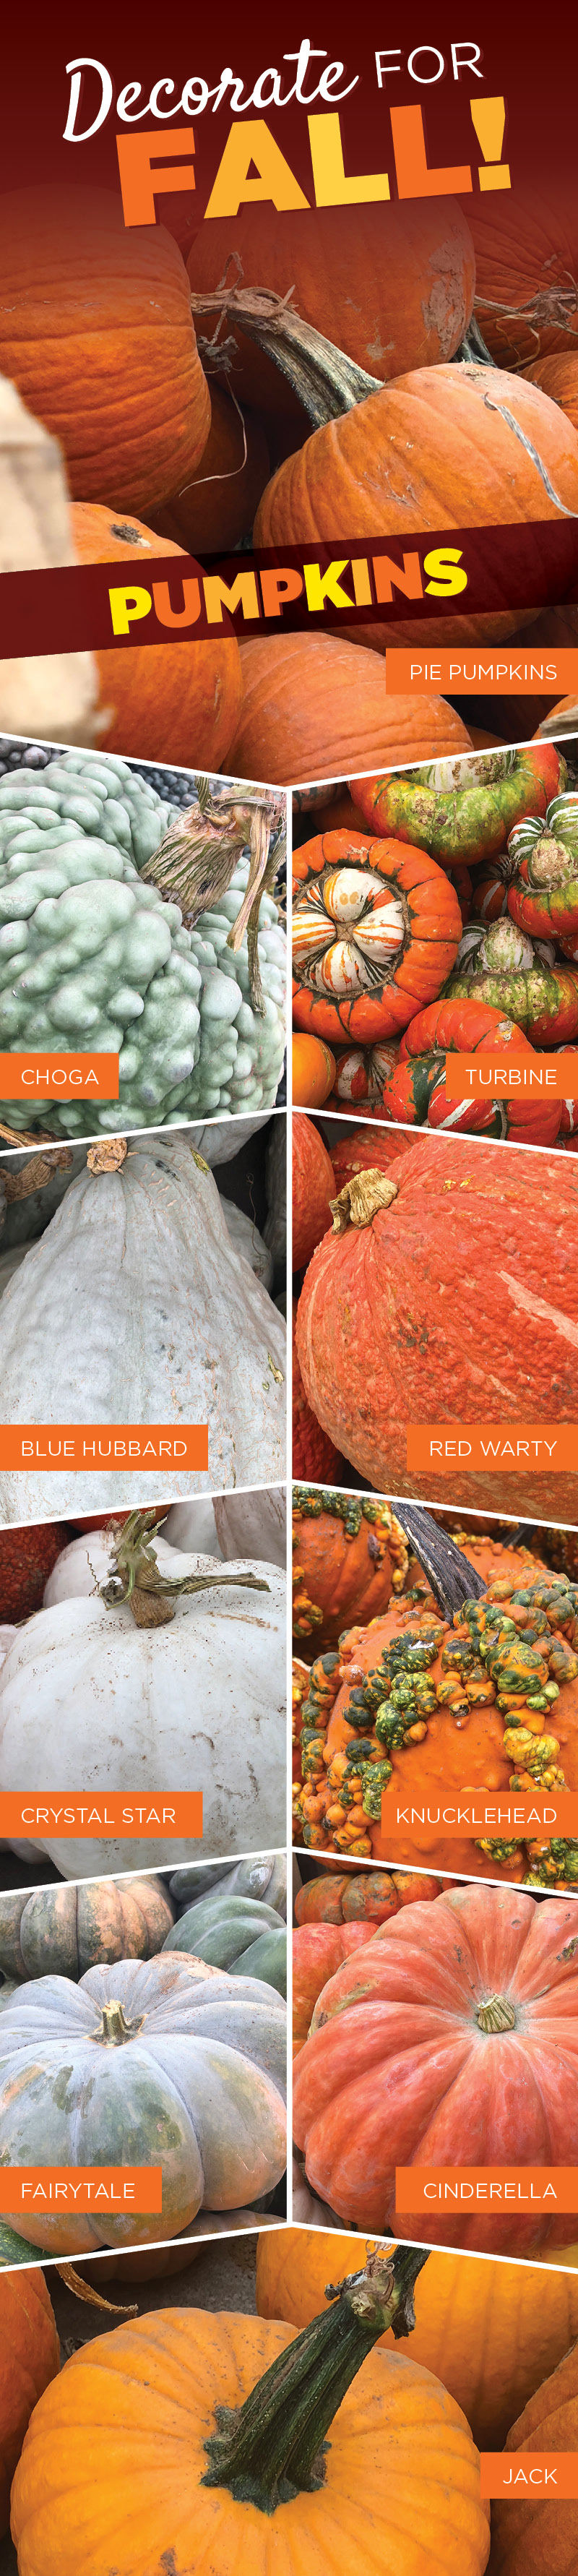 Decorate for Fall With Pumpkins   TLC